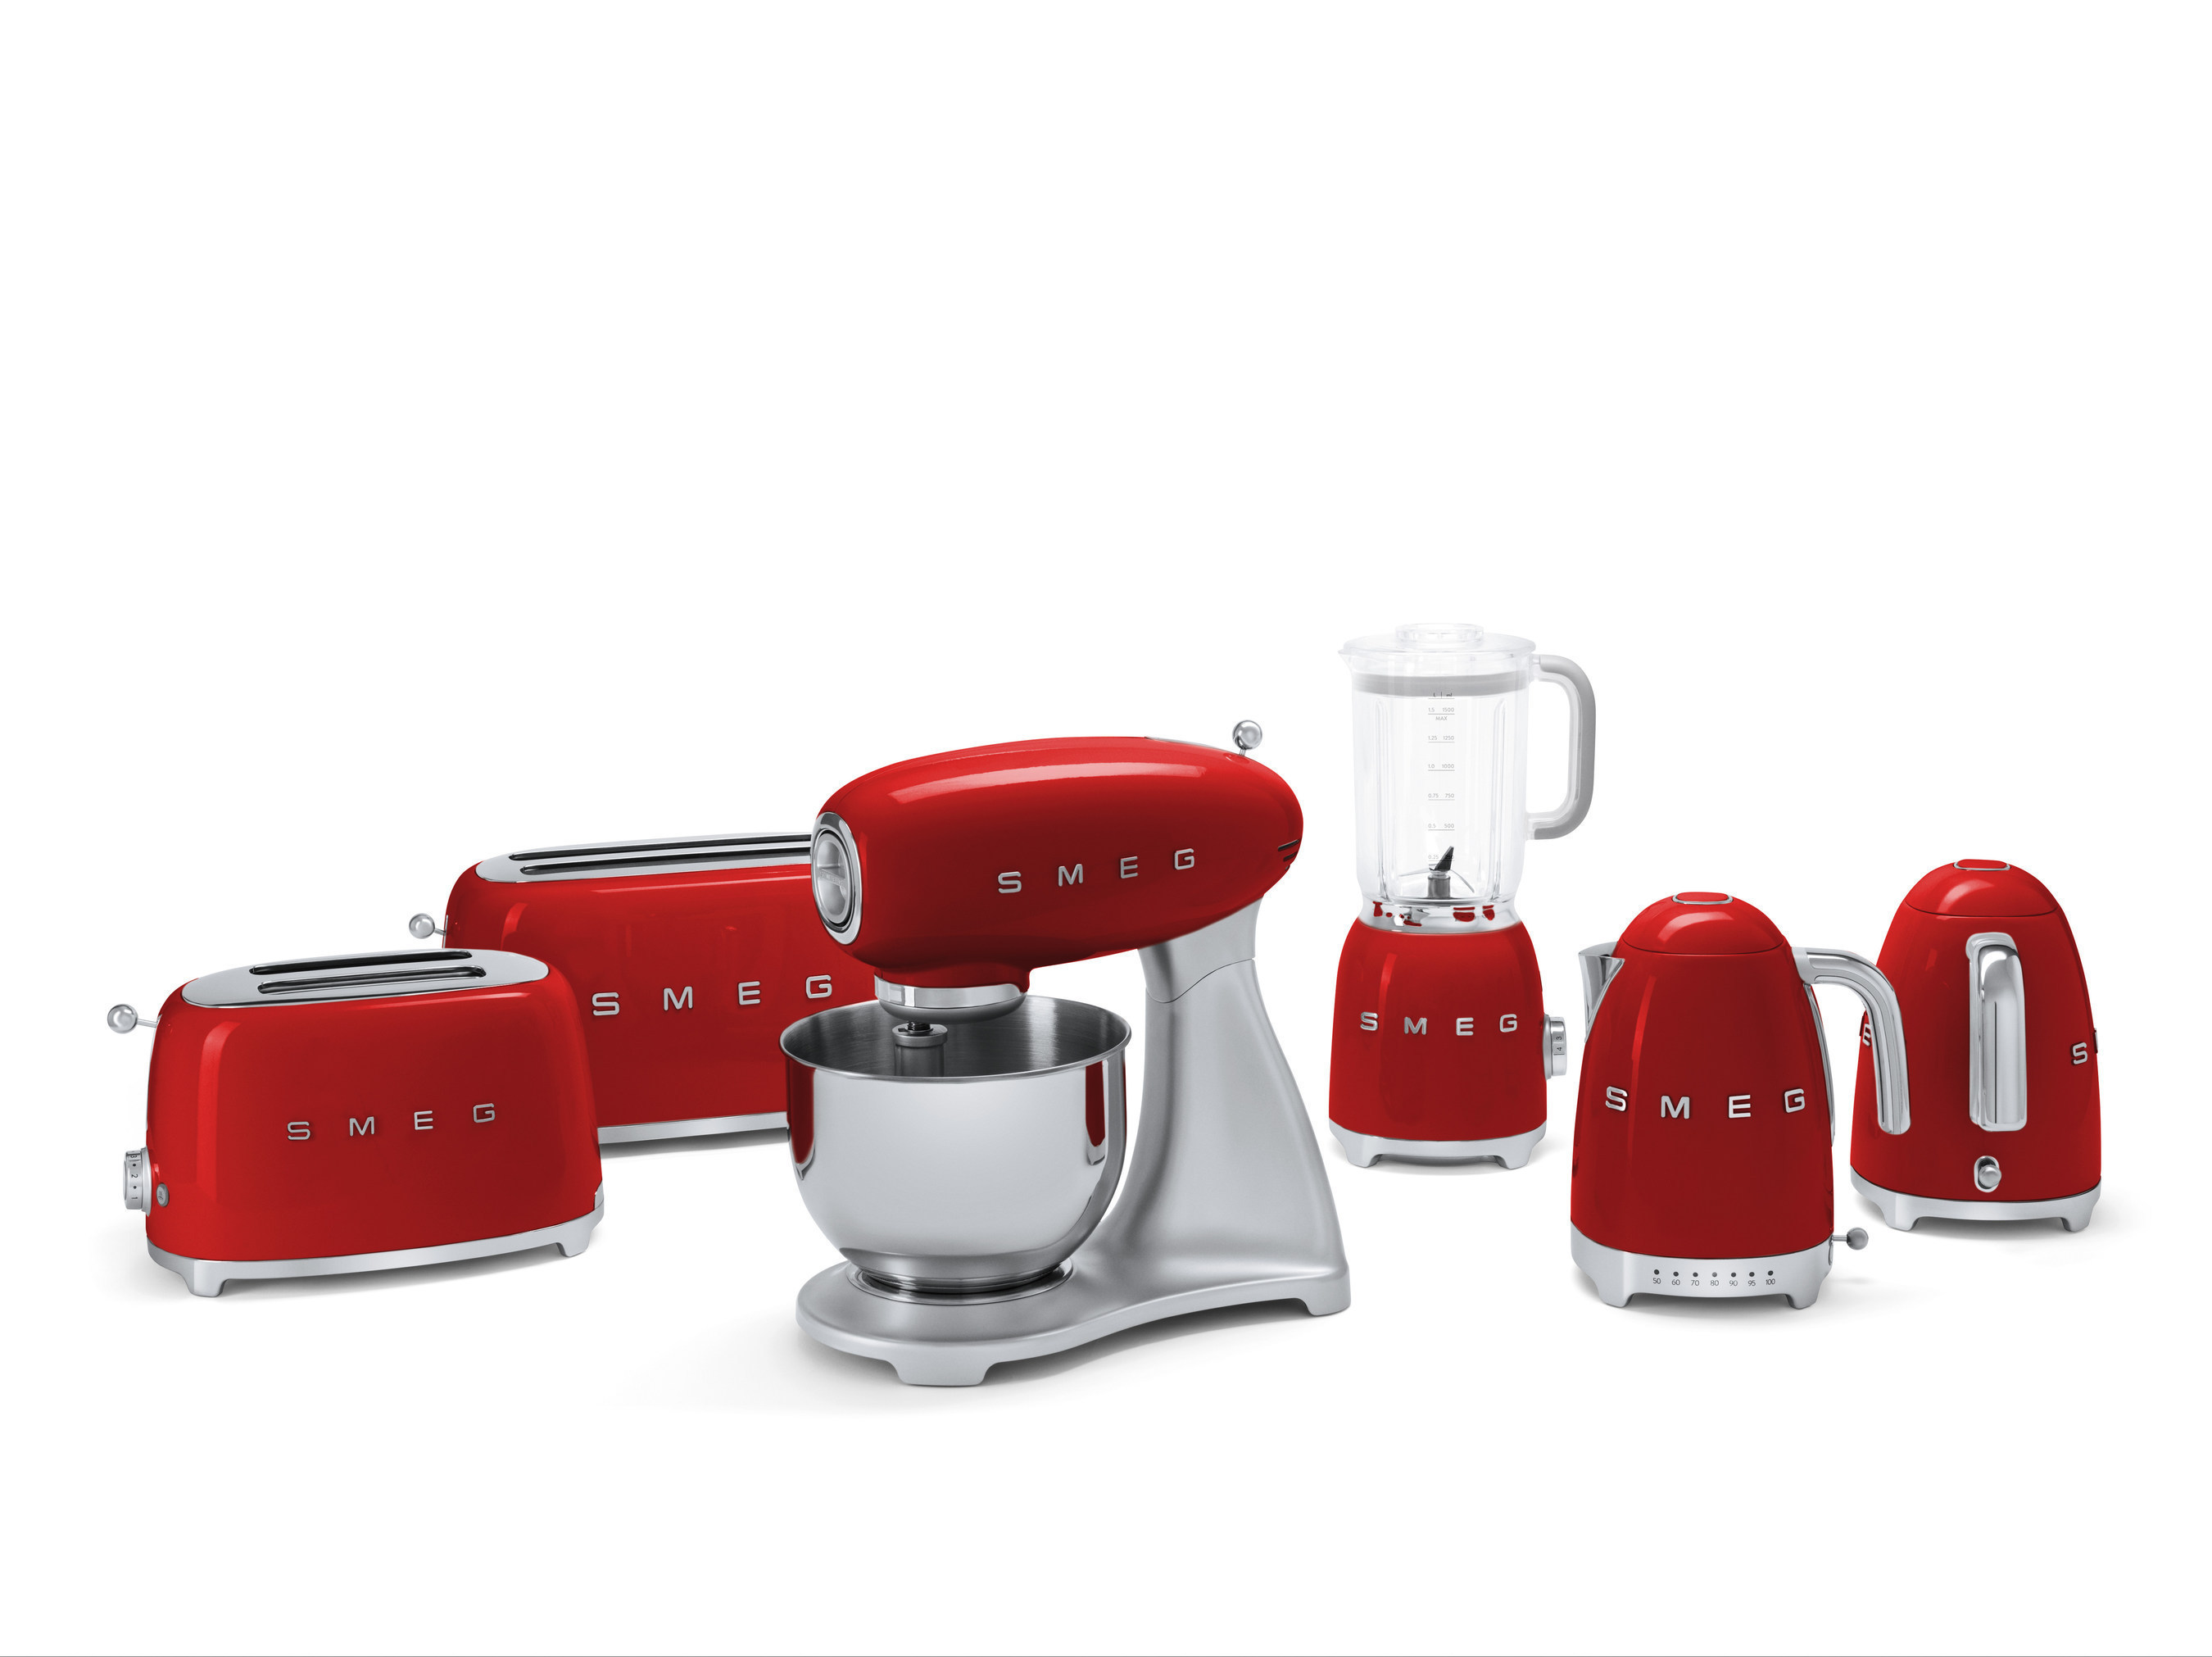 Retro Small Kitchen Appliances smeg's small appliances add instant charm and retro style to any